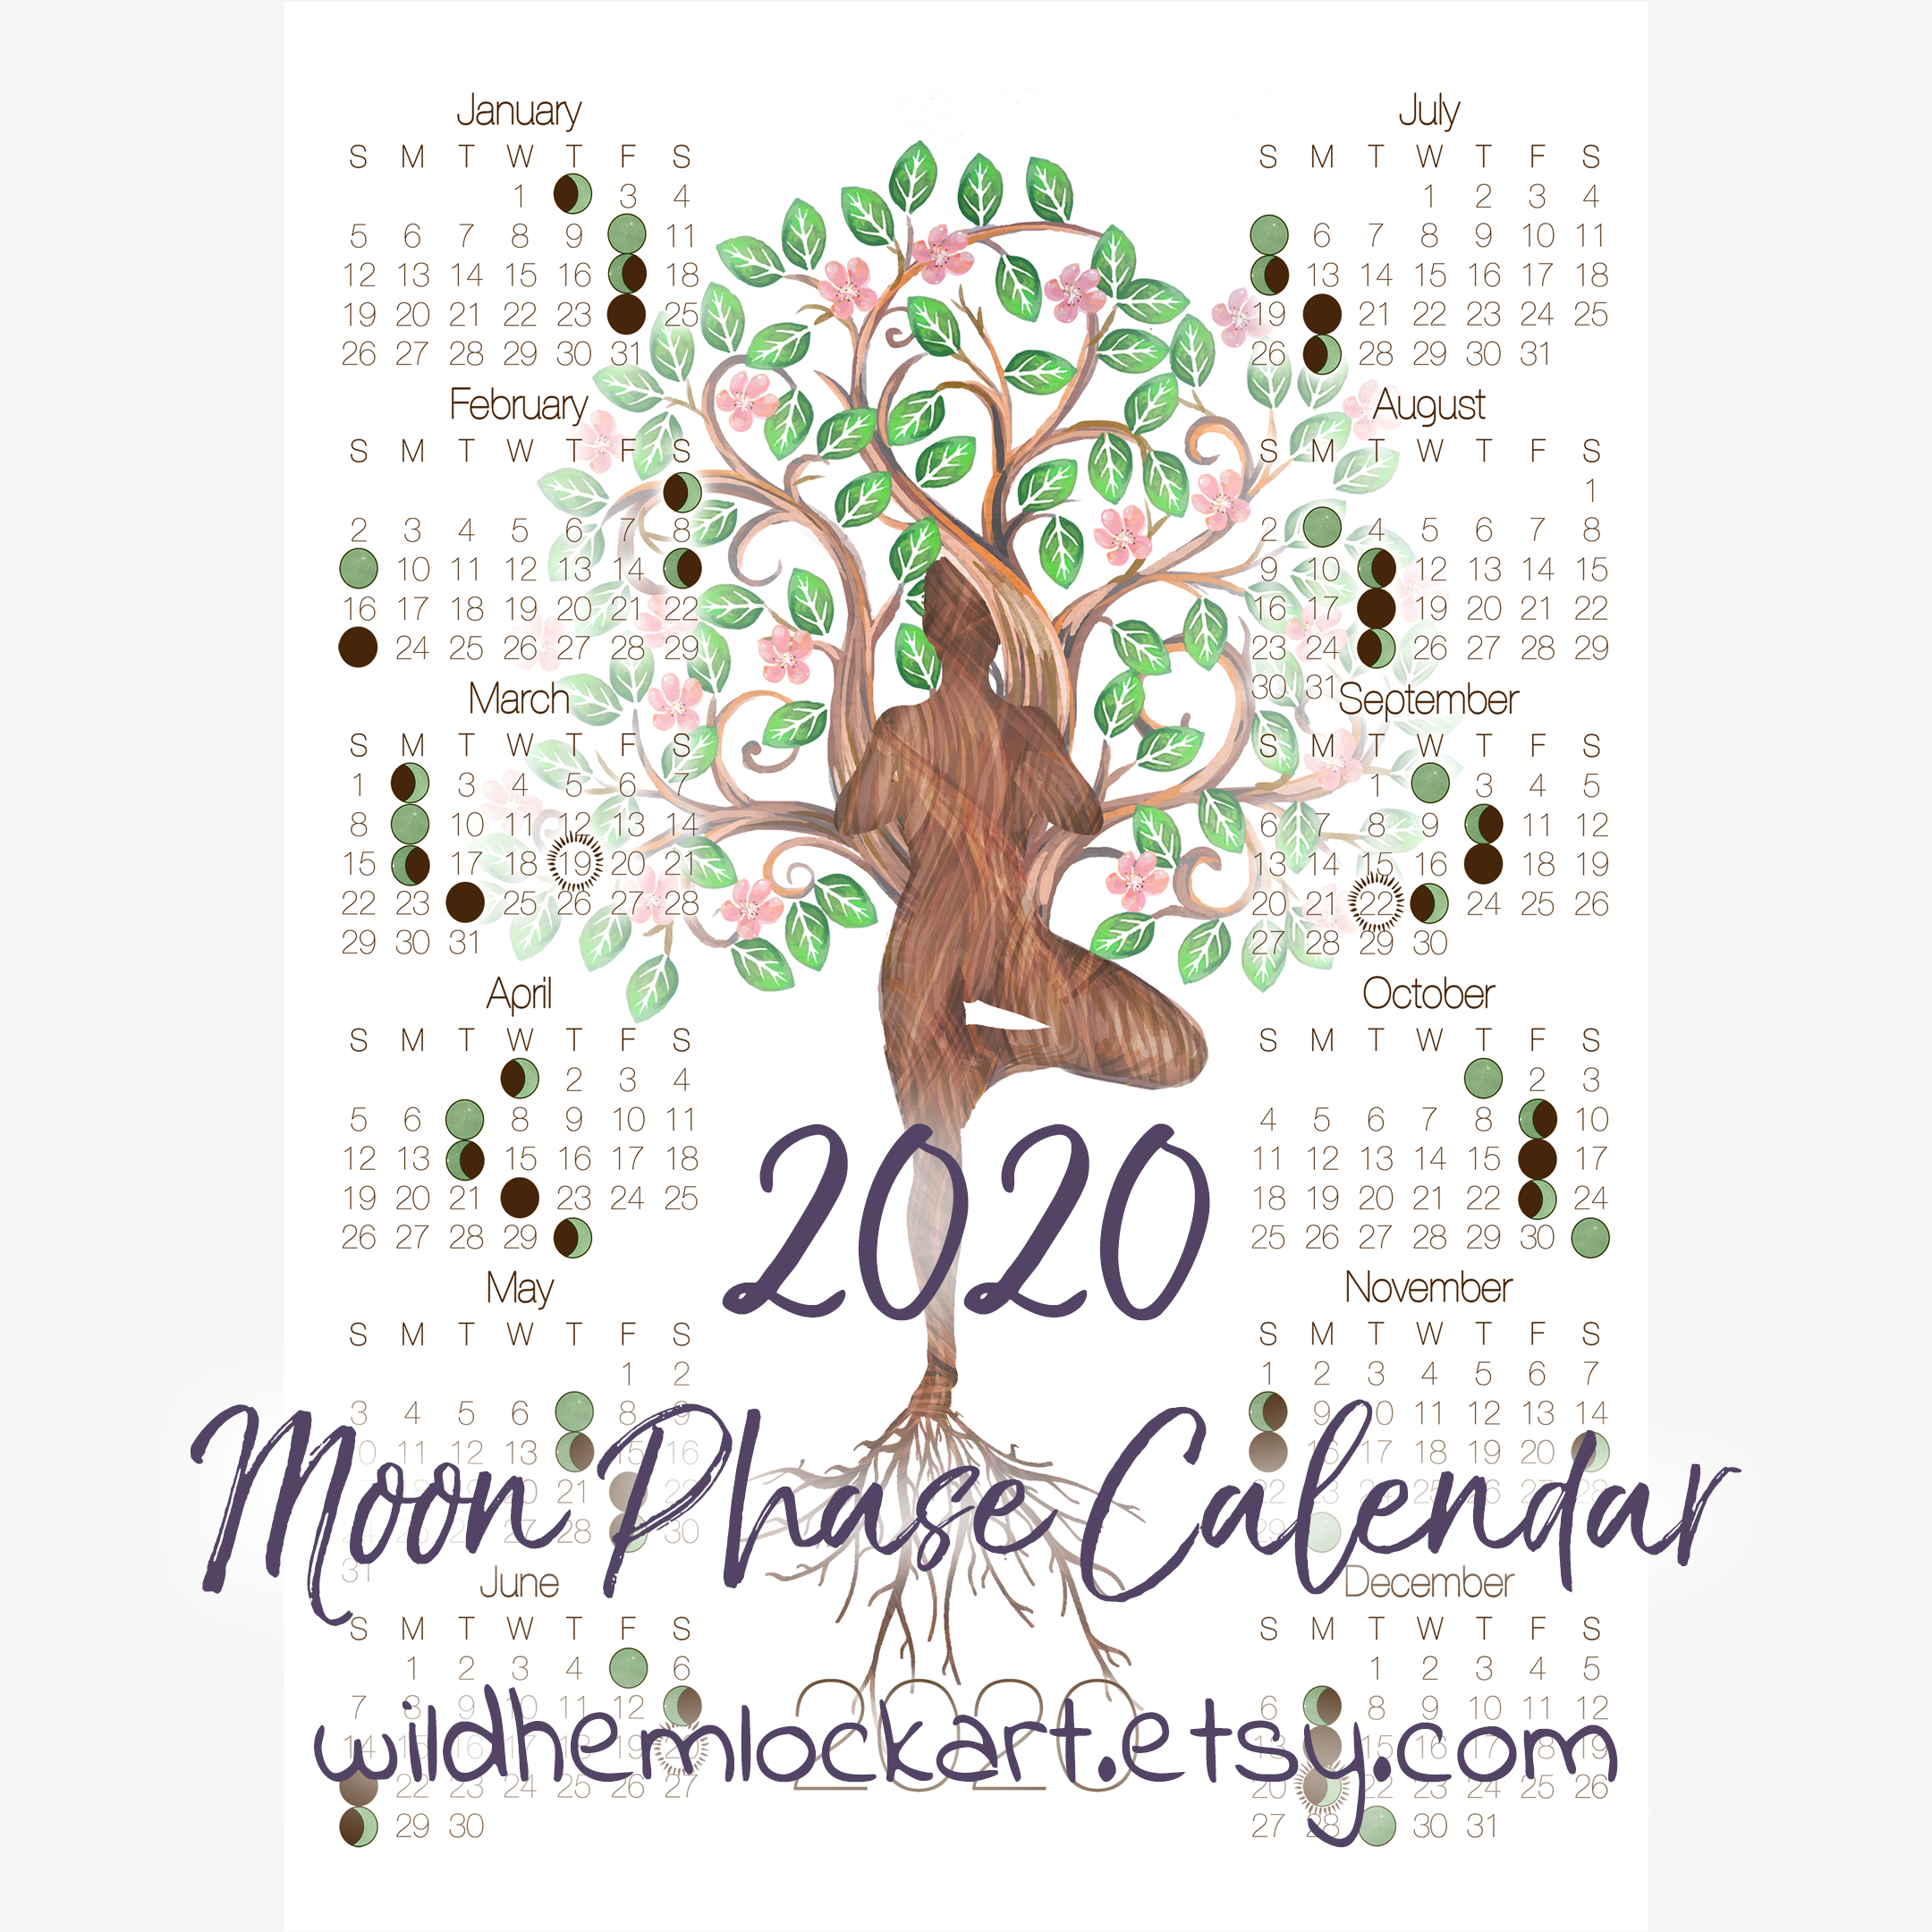 2020 Moon Phase Calendar - Lunar Calender With Tree Of Life